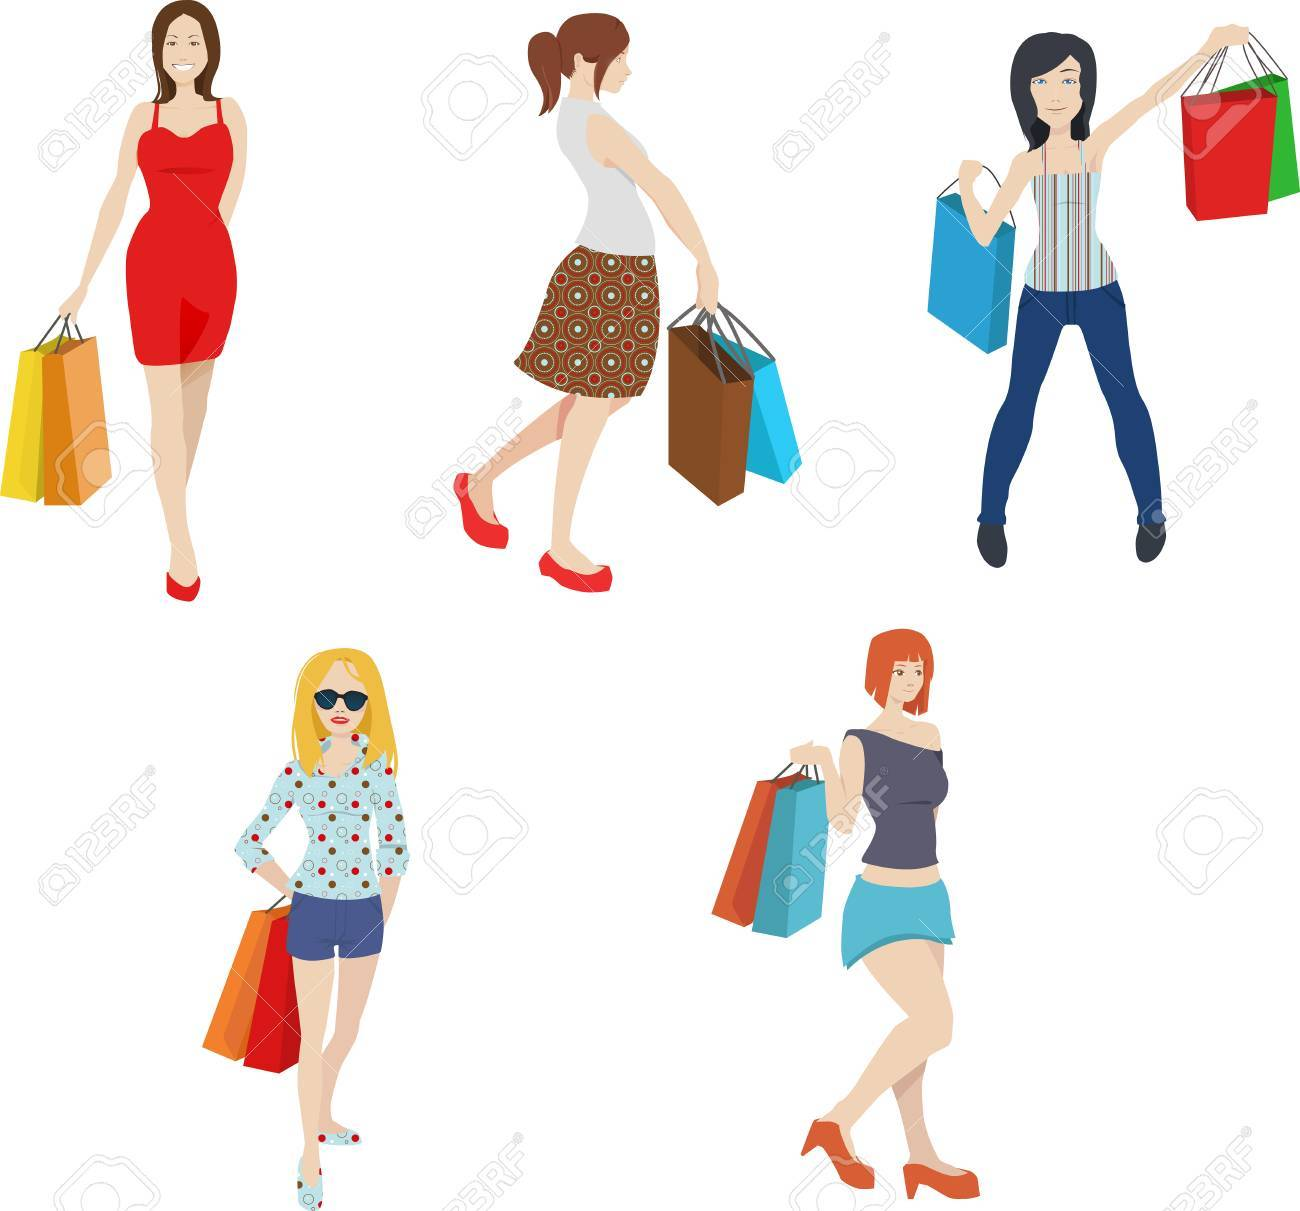 shopping women clip art fashionable trendy girl clipart royalty rh 123rf com woman with shopping bags clipart women shopping clip art free